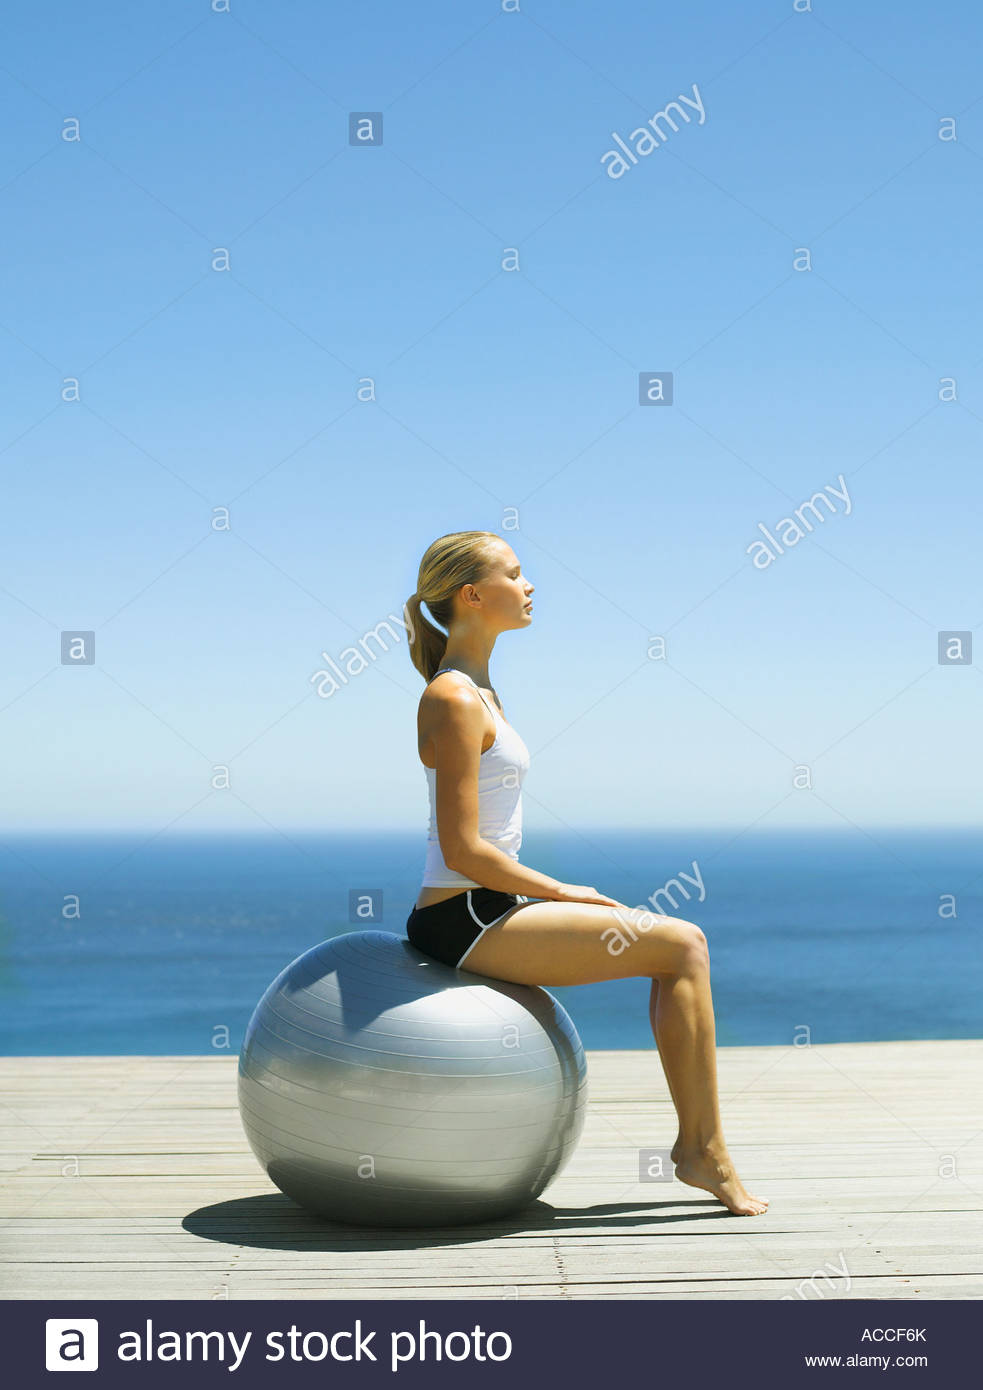 Woman sitting on an exercise ball - Stock Image